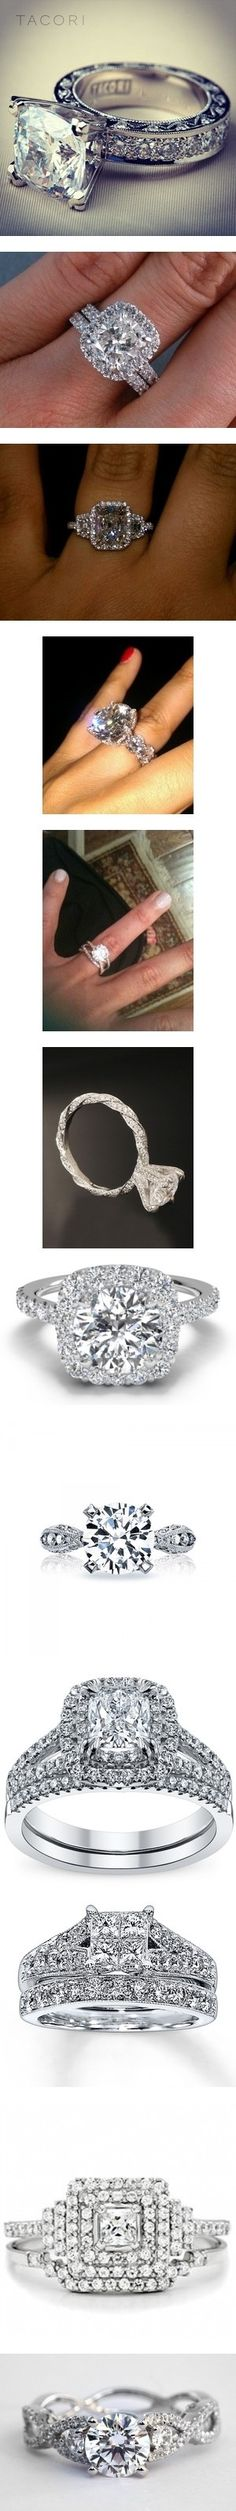 """Wedding Rings! (my DREAM wedding rings)"" by callico32 on Polyvore by donna.moses.96"